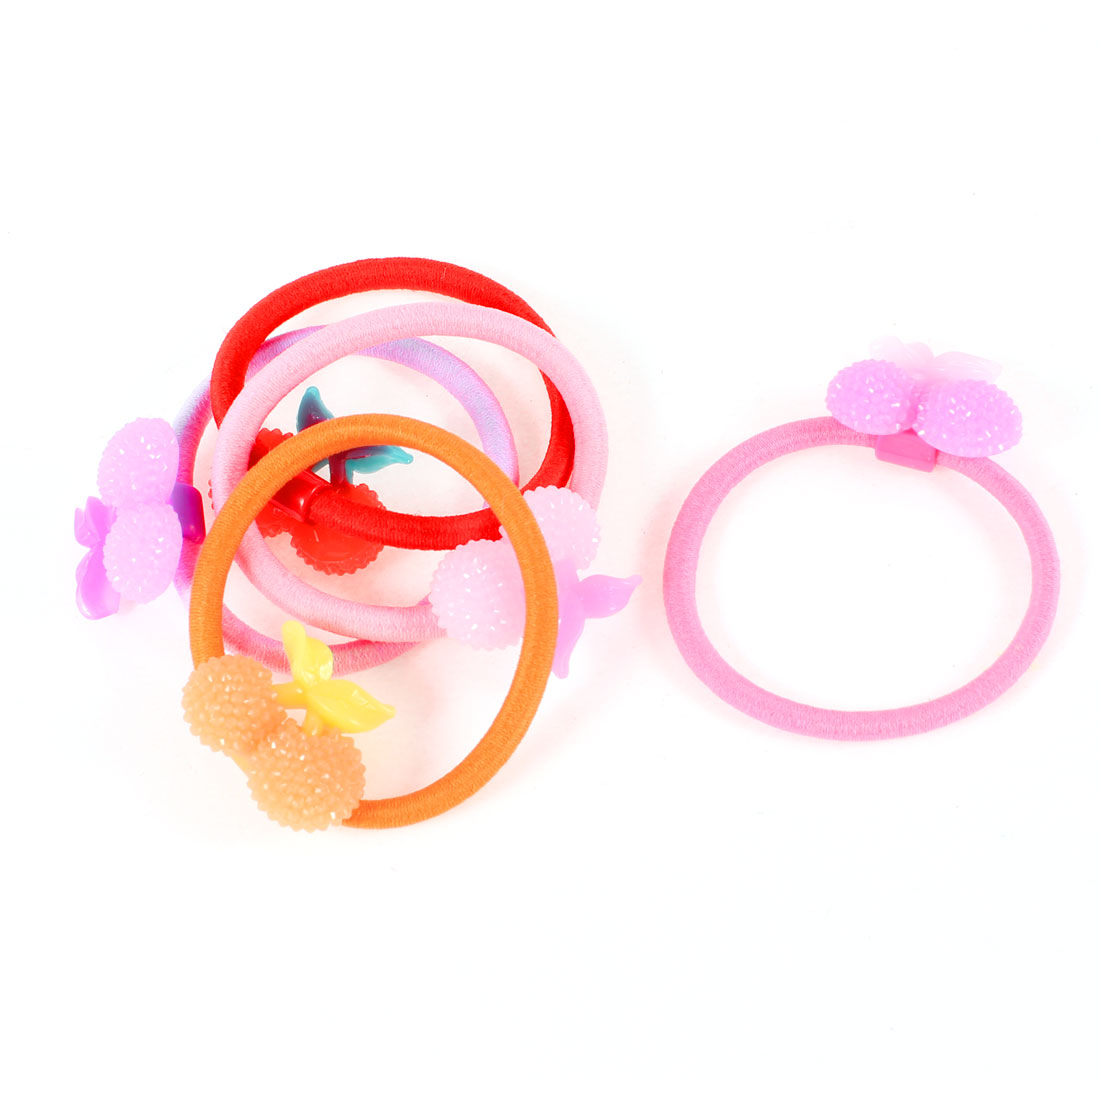 5 Pcs Kids Assorted Colors Elastic Rubber Band Hair Tie Ponytail Holder